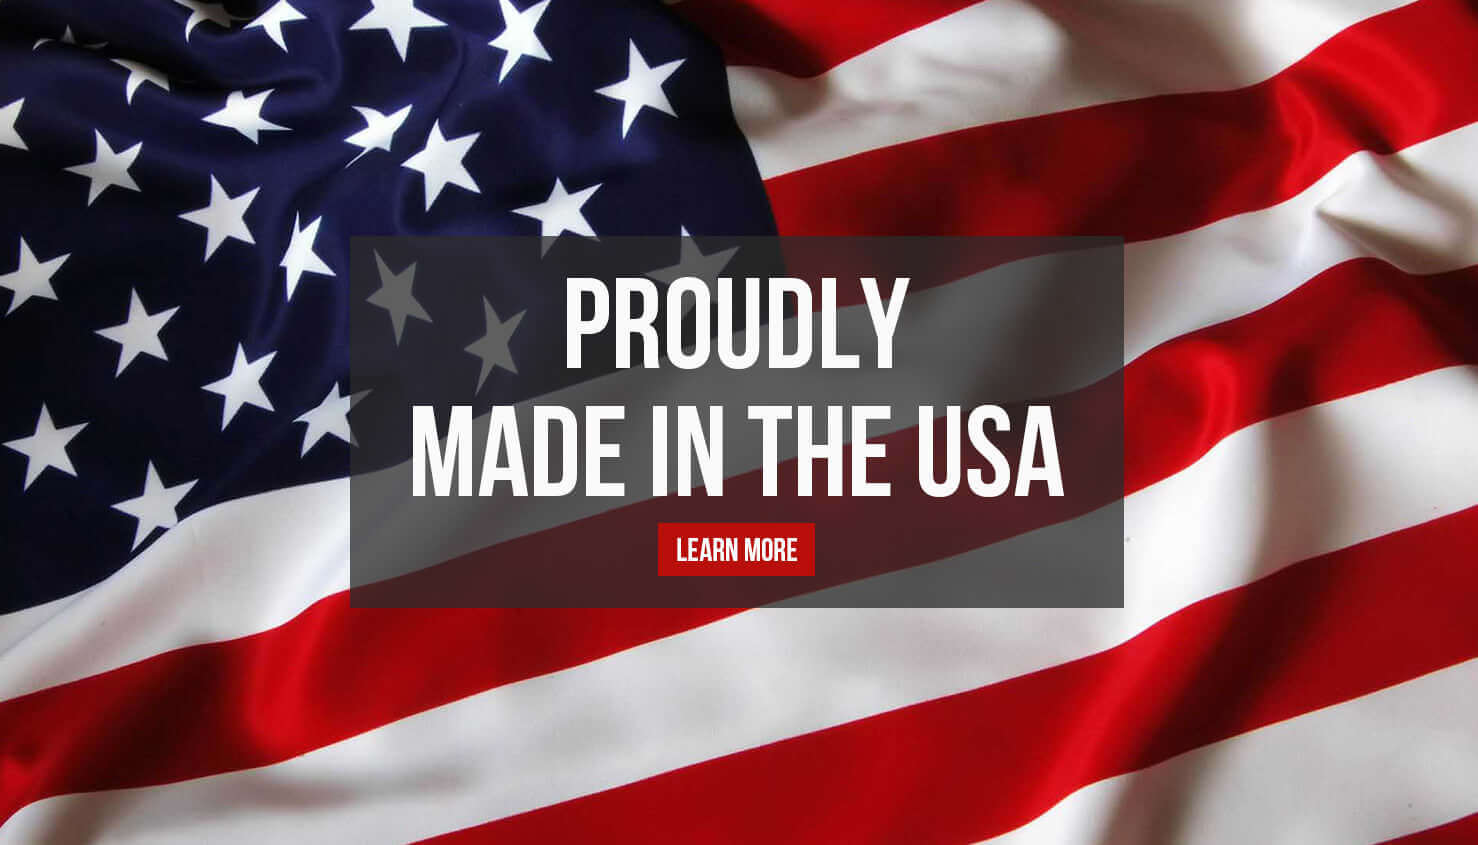 All of Our Products For Sale Are Made in the USA